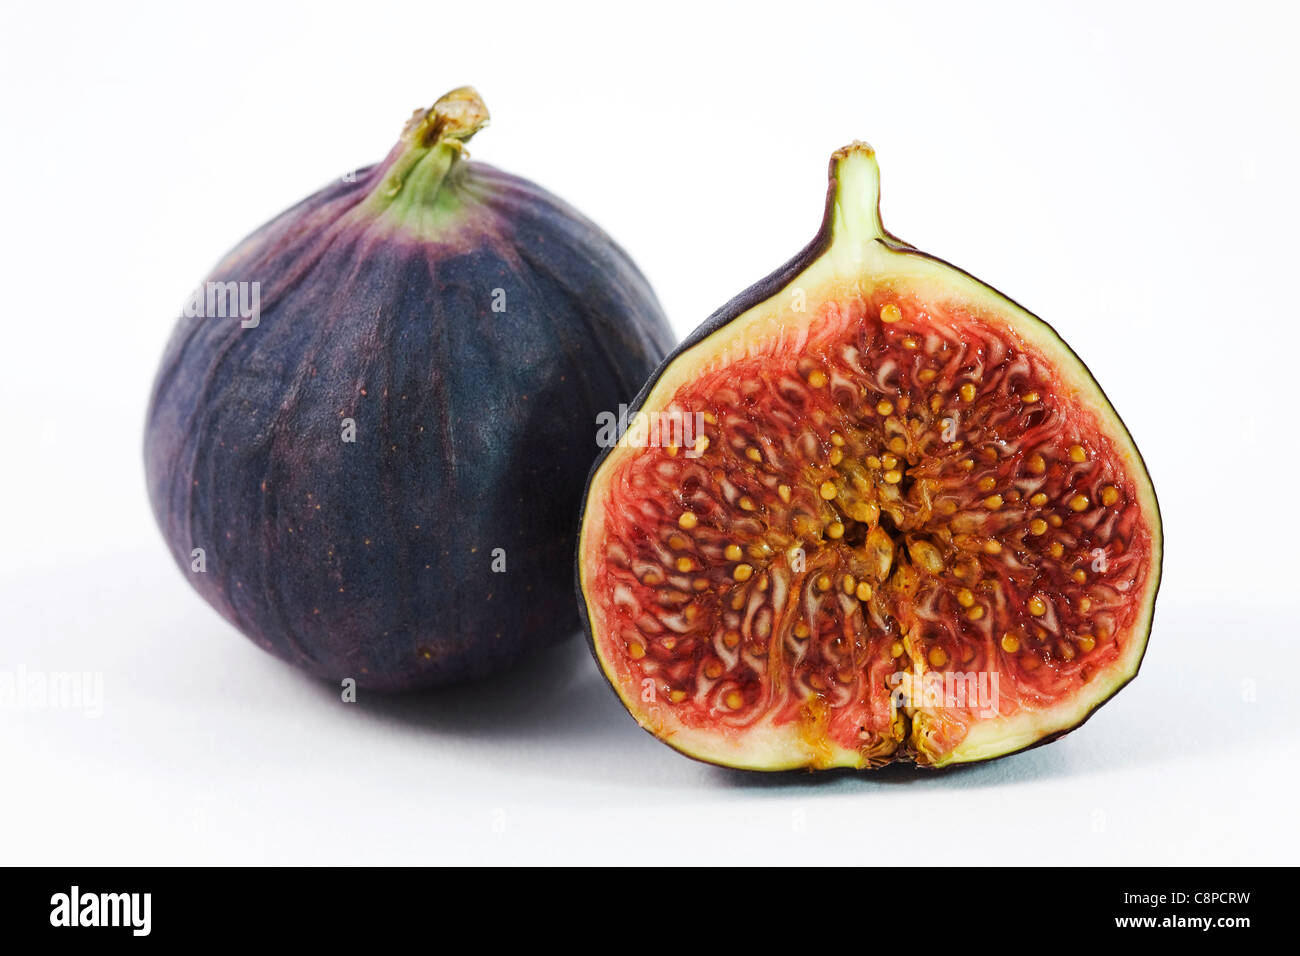 Ficus carica. Black Bursa fig cross section on a white background. - Stock Image